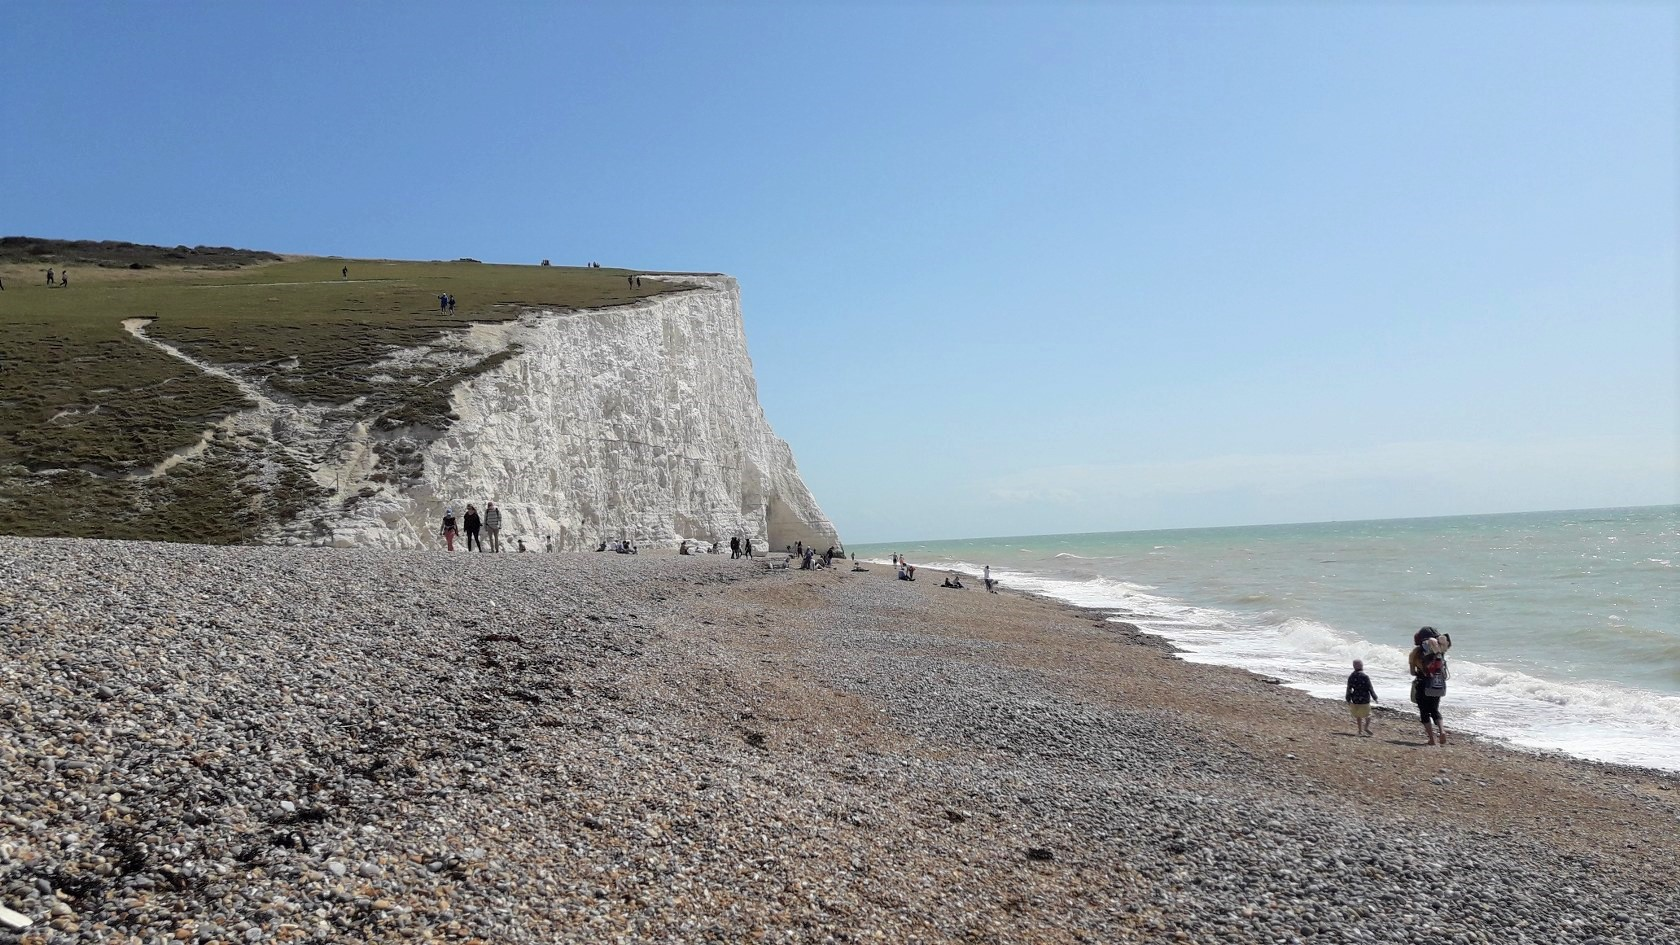 Cuckmere Haven (křídové útesy)